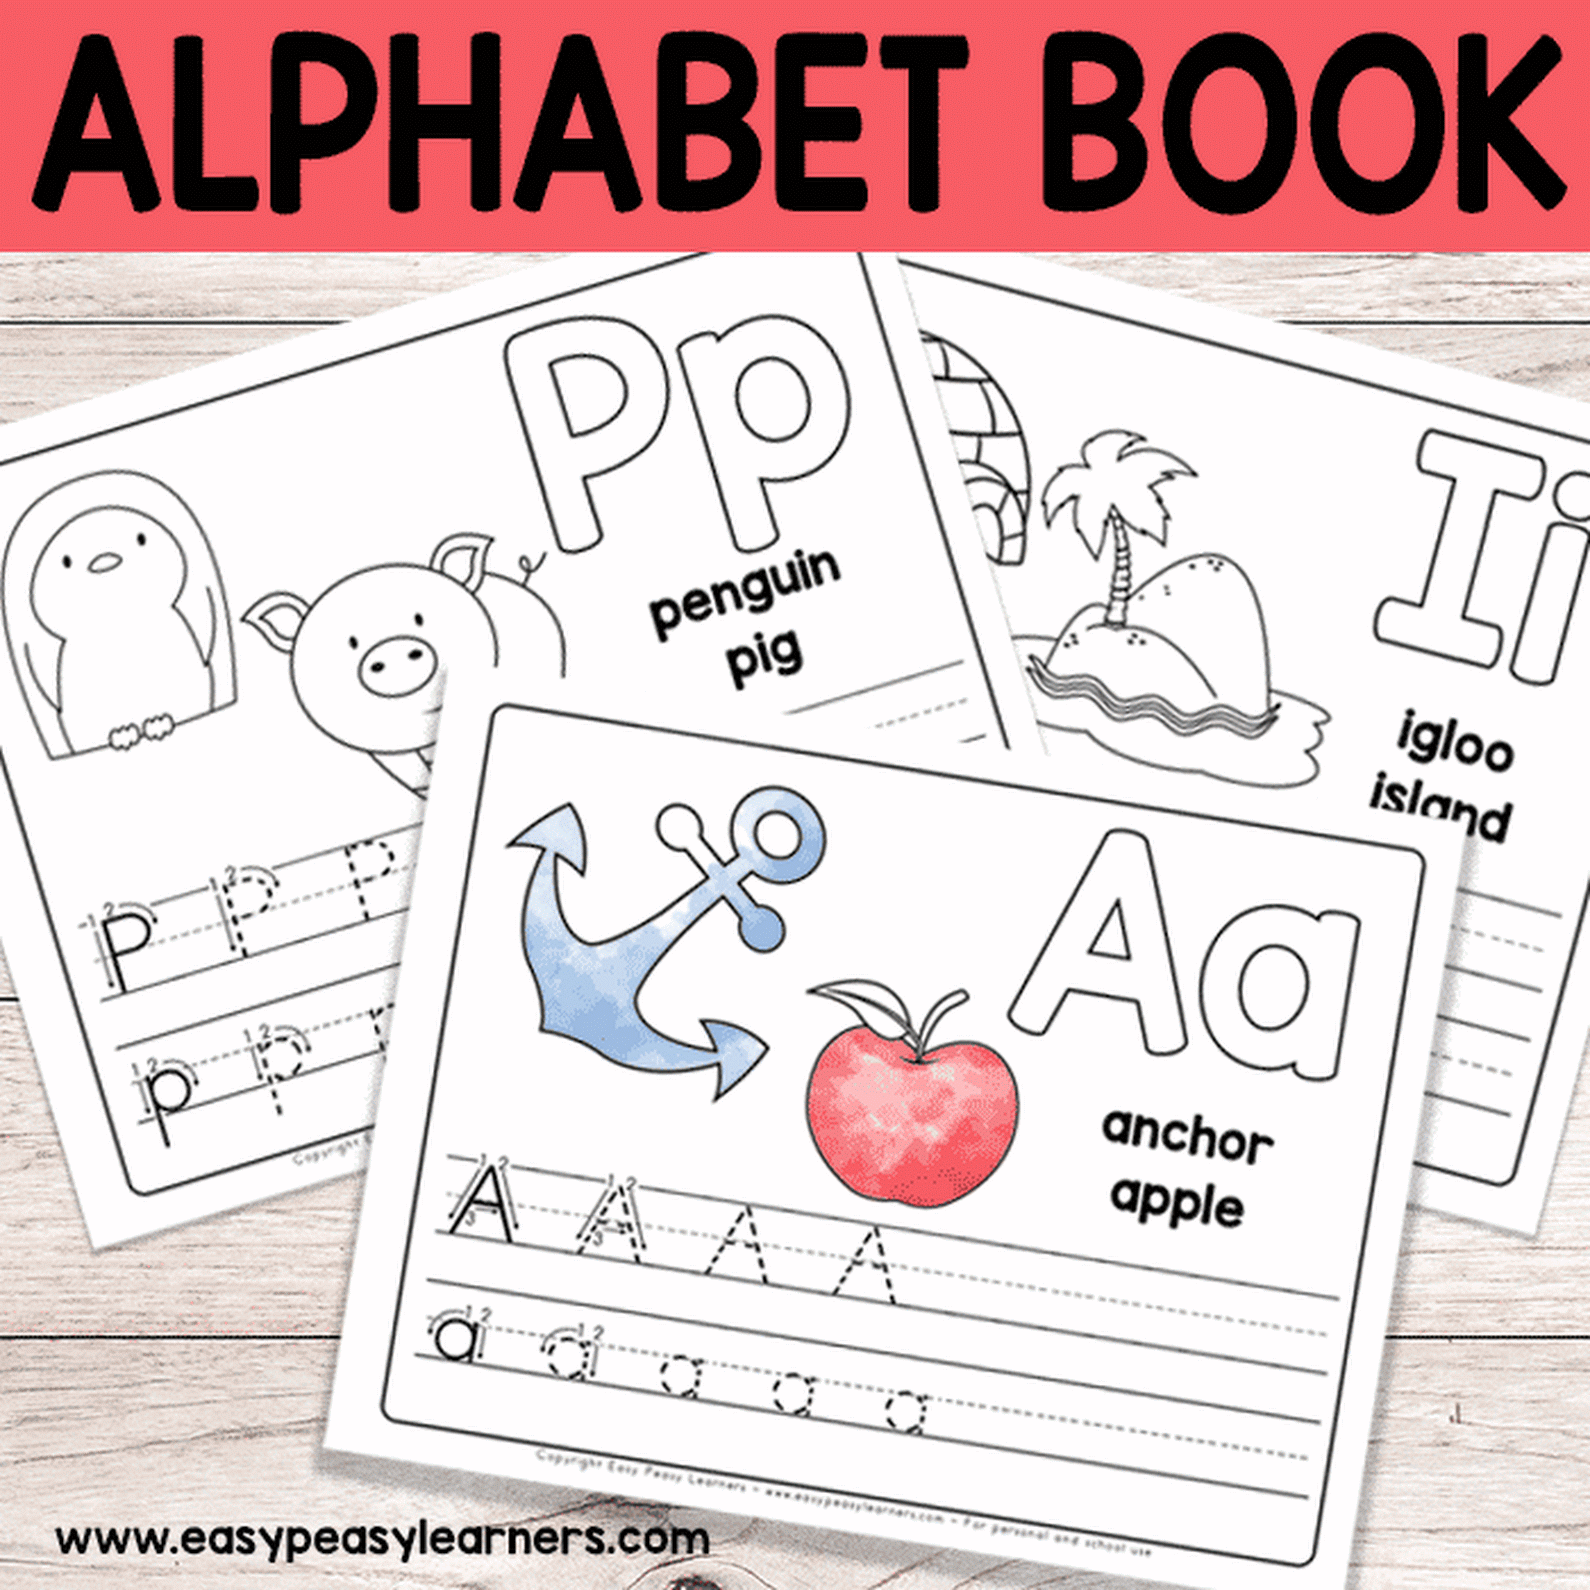 Free Printable Alphabet Book - Alphabet Worksheets for Pre ...